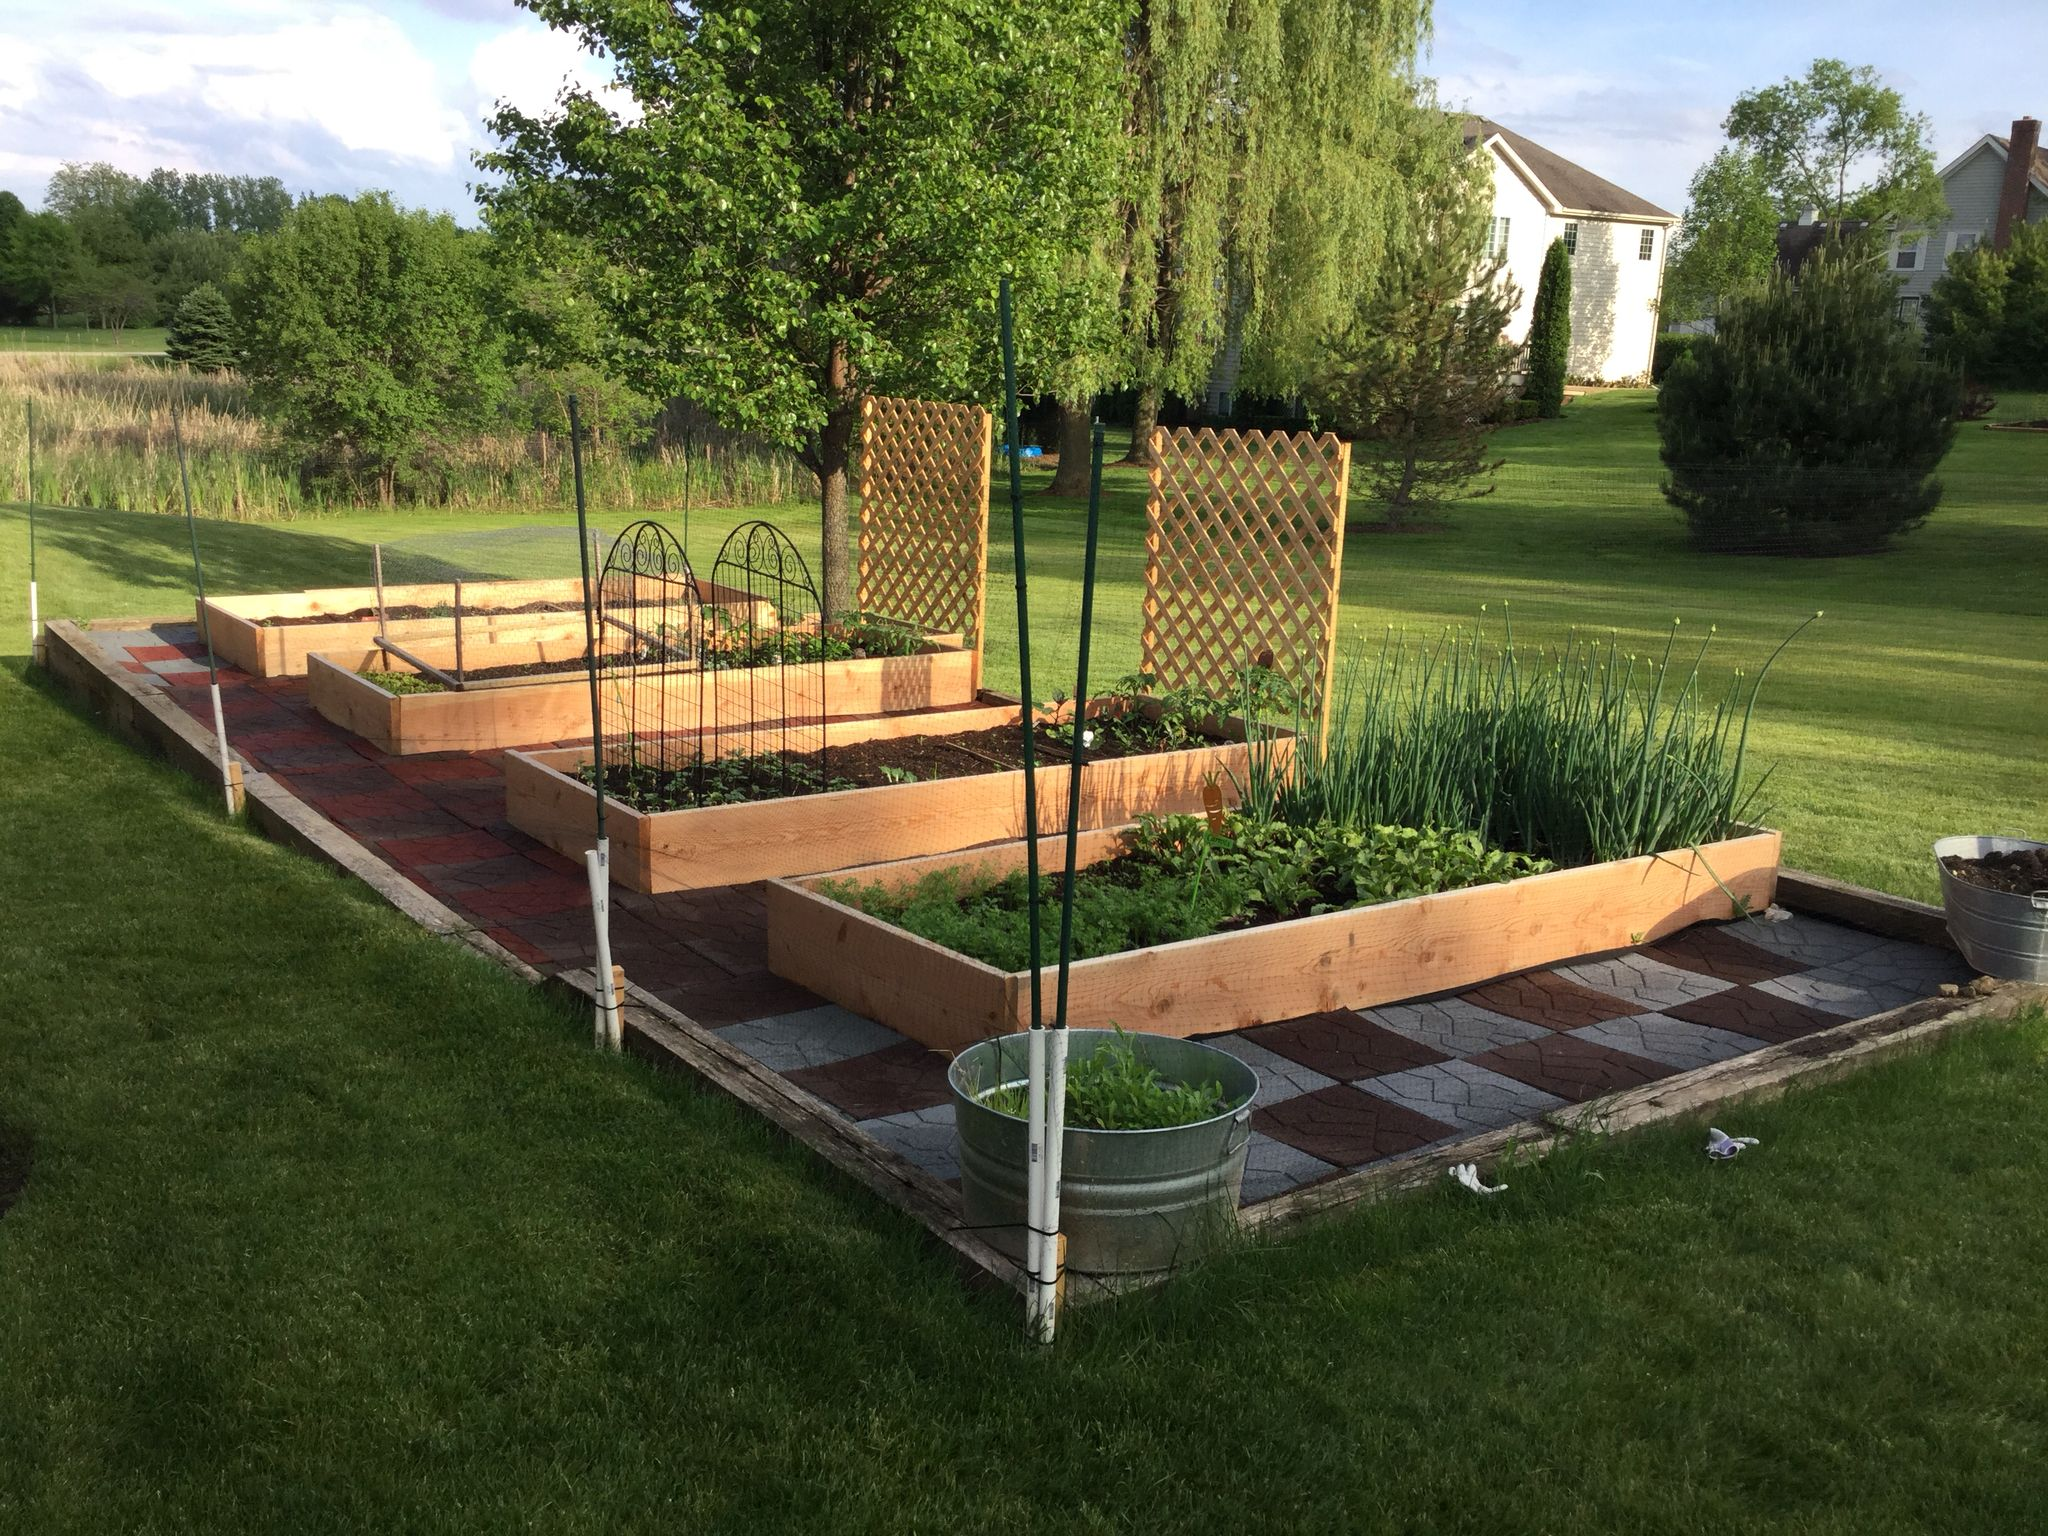 Rosalia S 2015 Raised Bed Garden With Deer Fence A